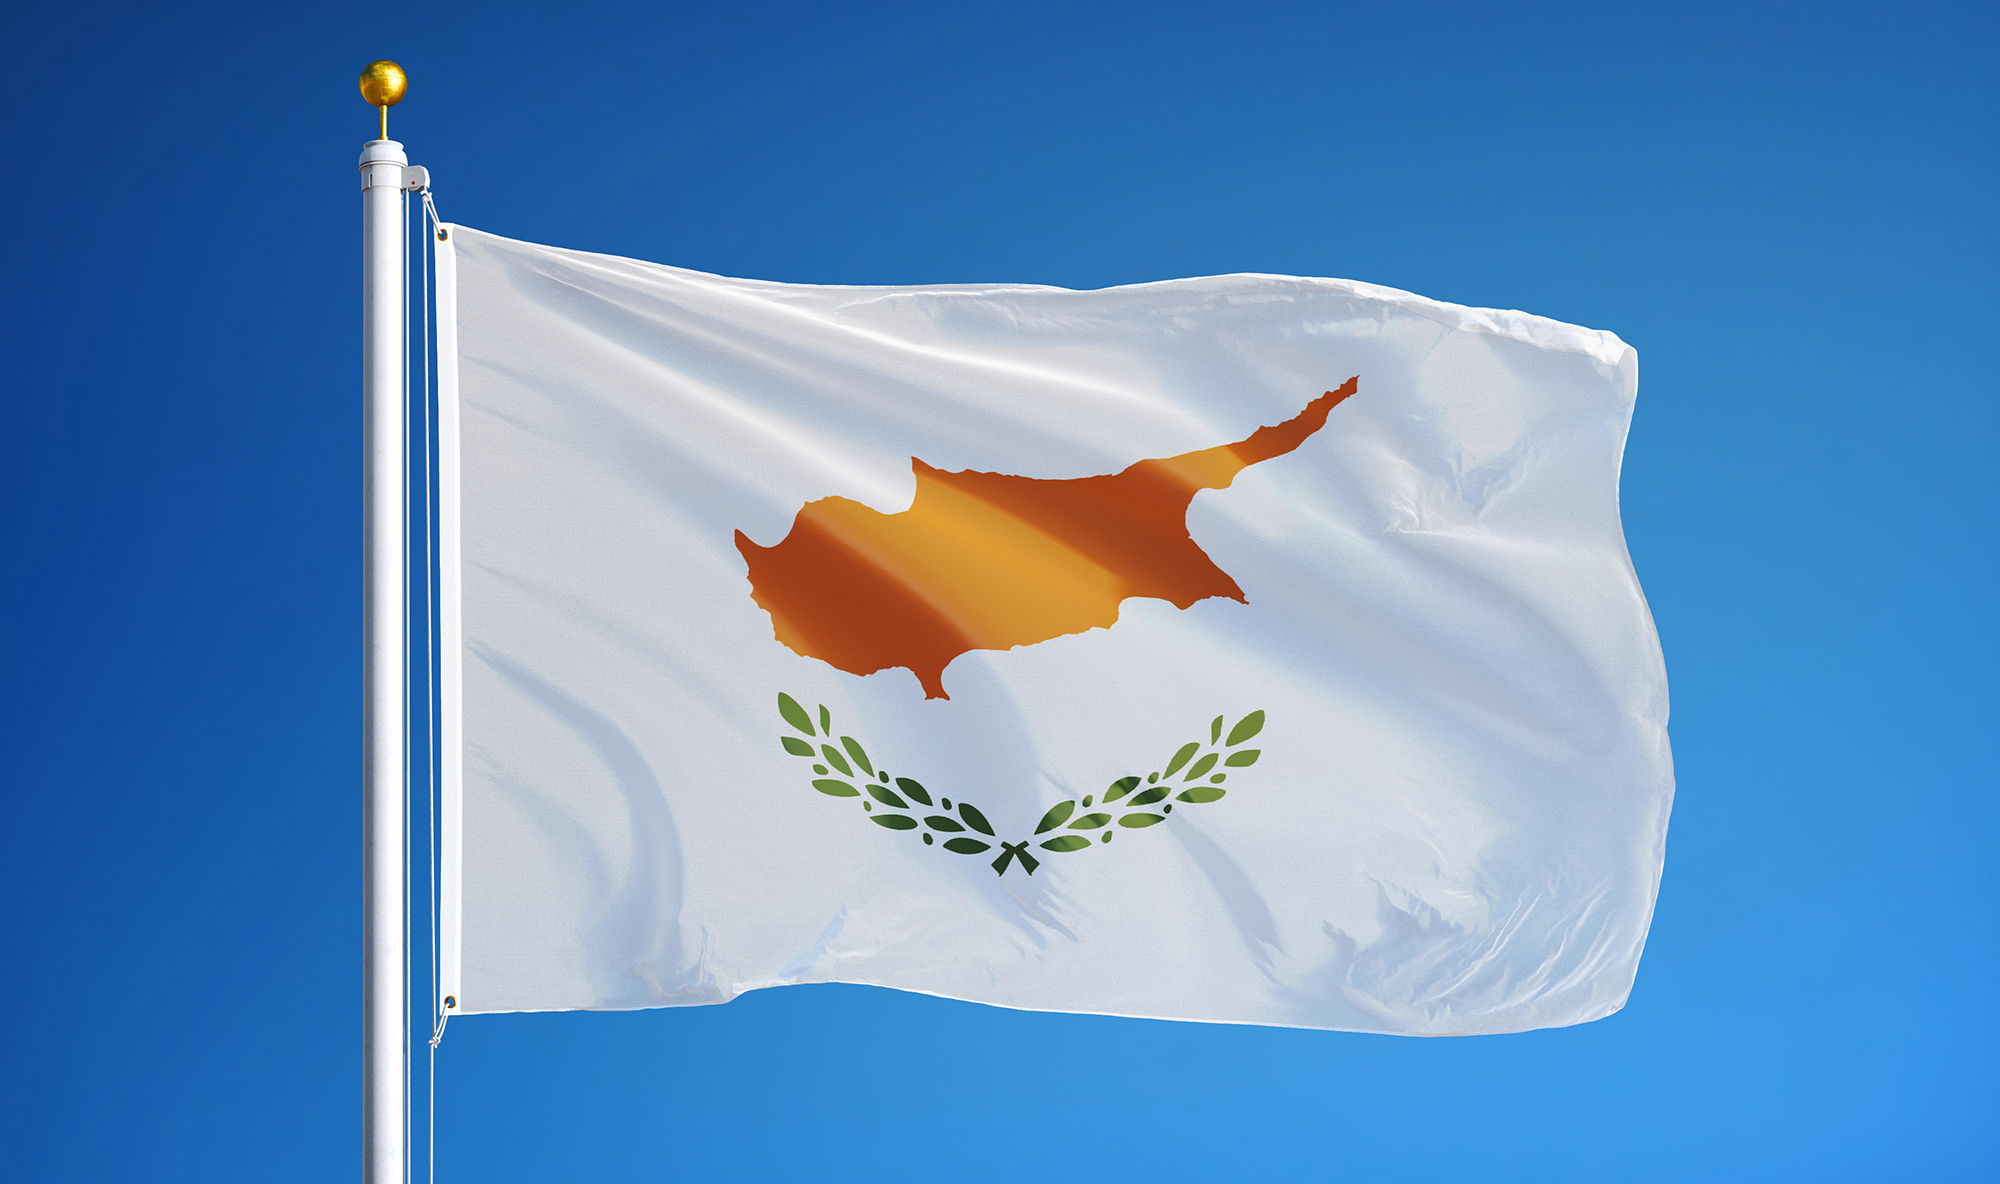 🇨🇾 Cyprus announced new filing extension